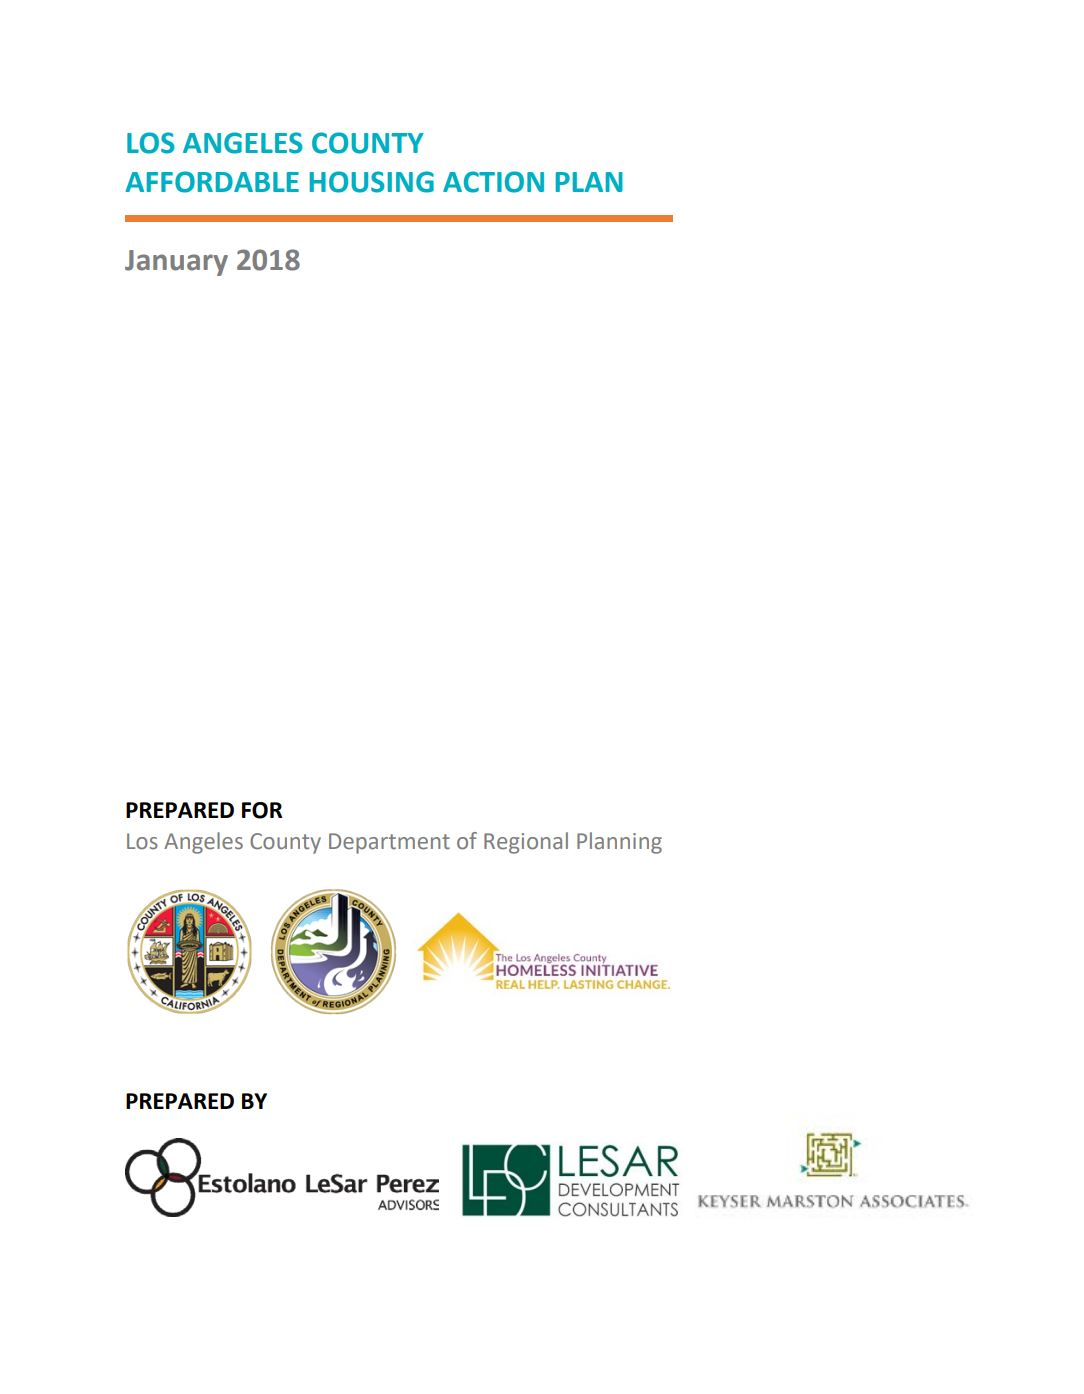 LA County#Affordable Housing Action Plan